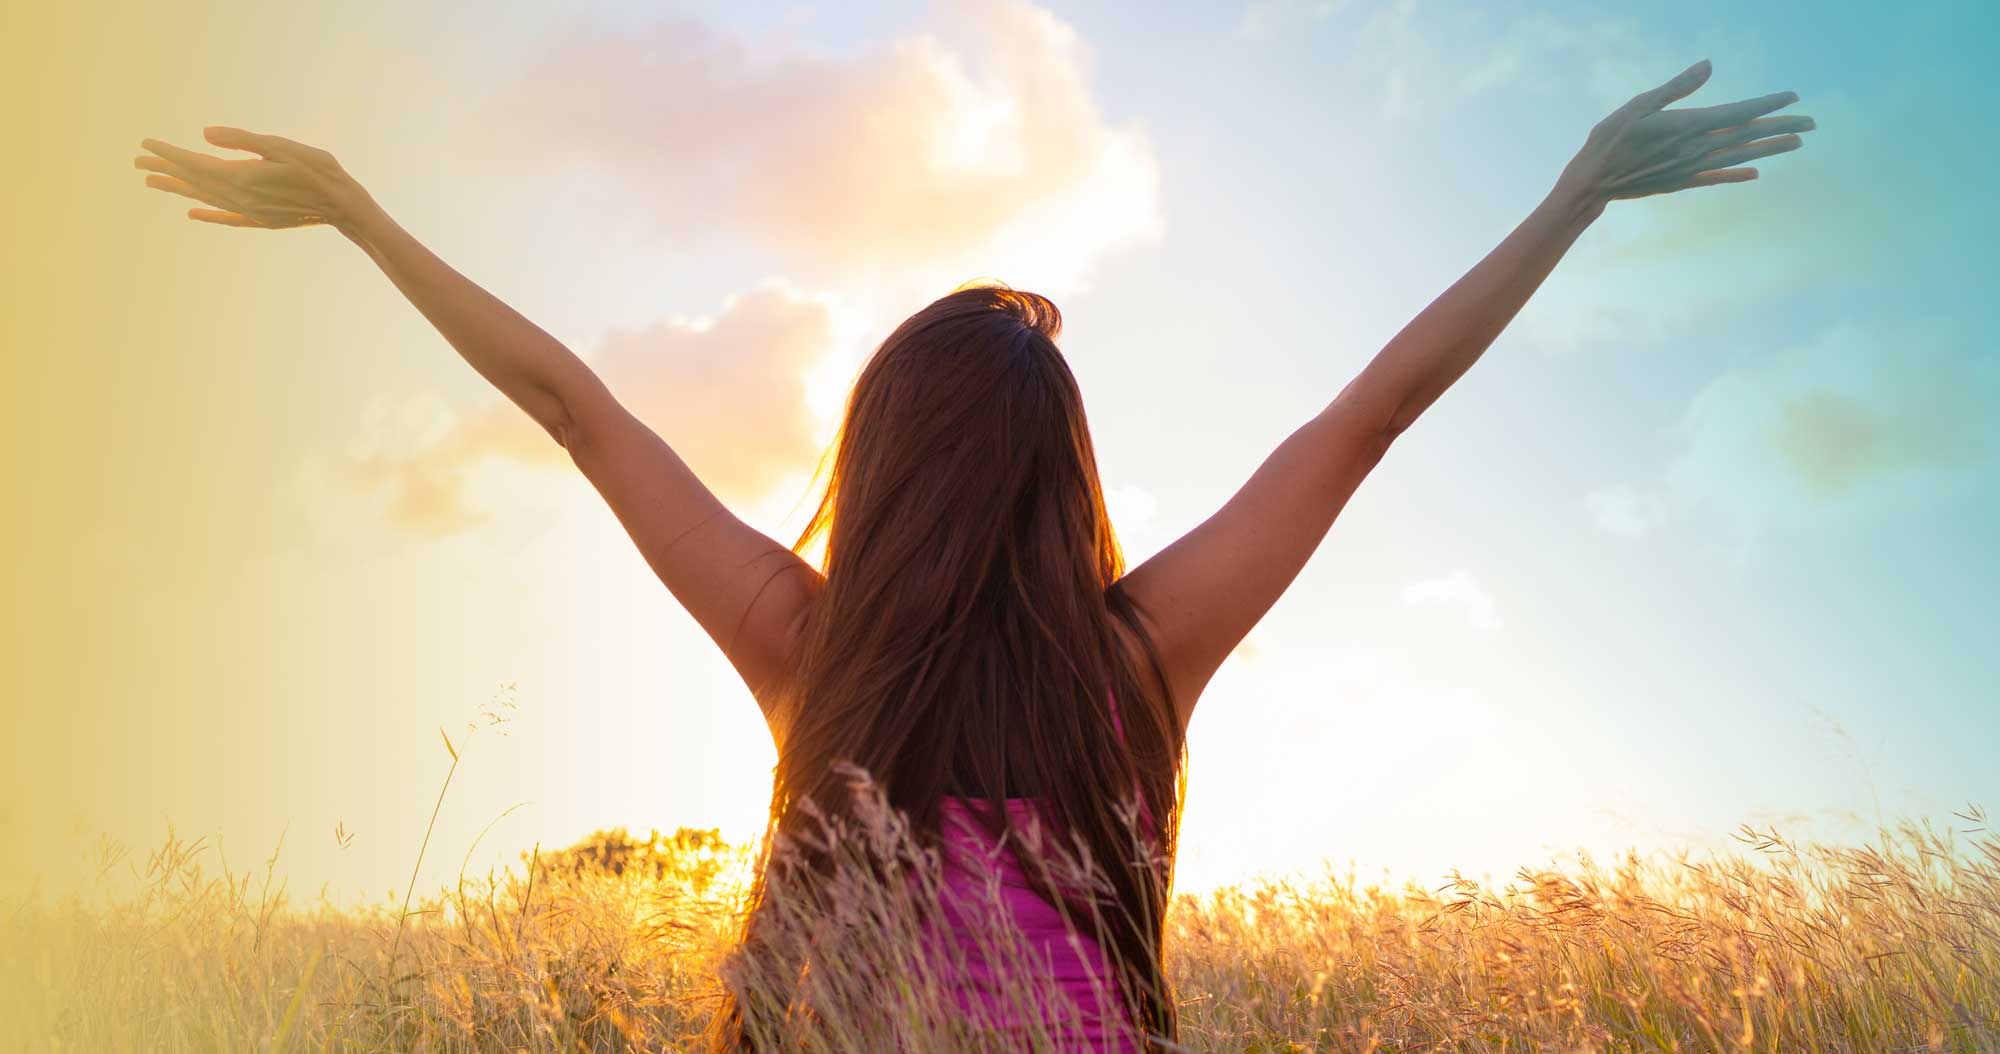 Woman with outstretched arms in corn field